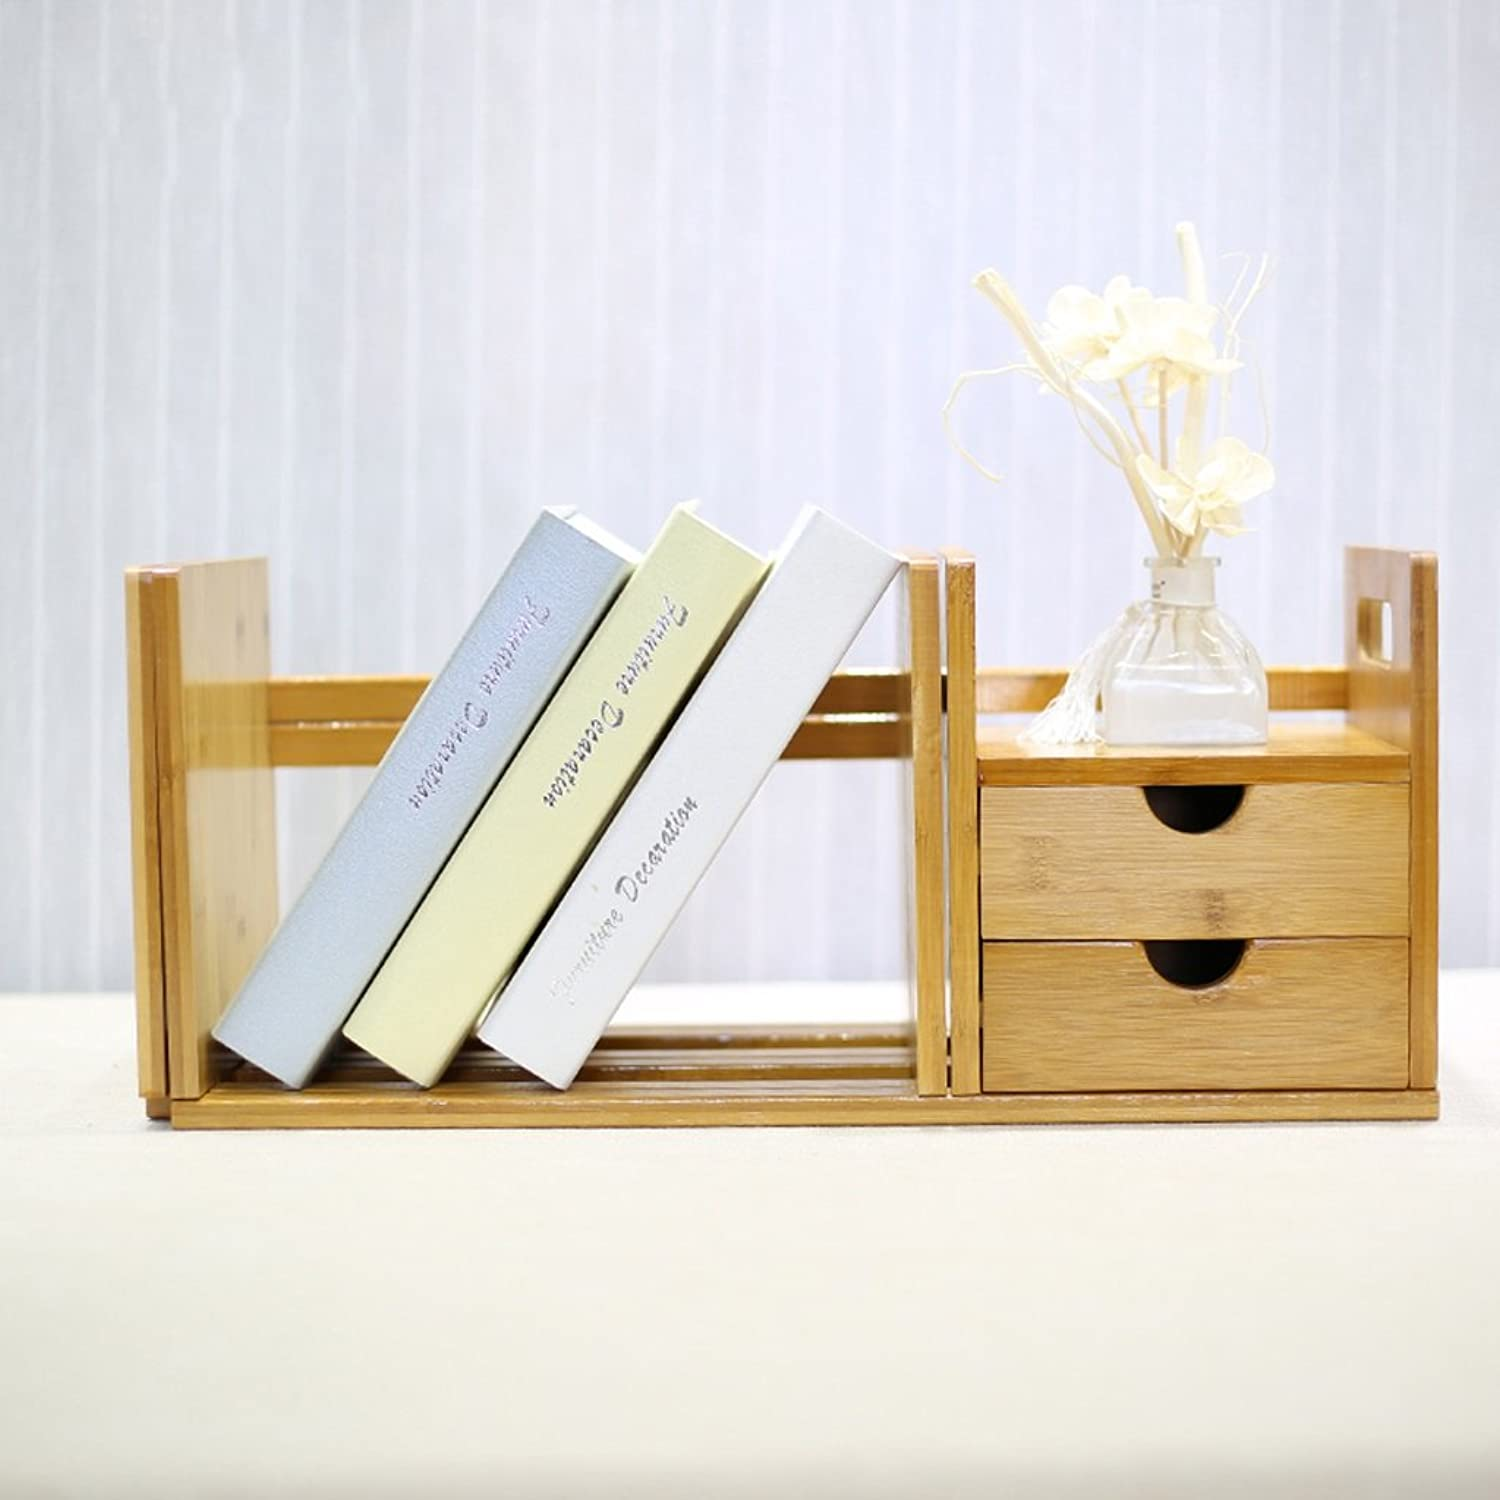 BJLWT Can Be Retractable Small Bookshelf On The Desk, Office Desk Simple Book Shelf Rack, 2 Drawers (Environmental Bamboo)